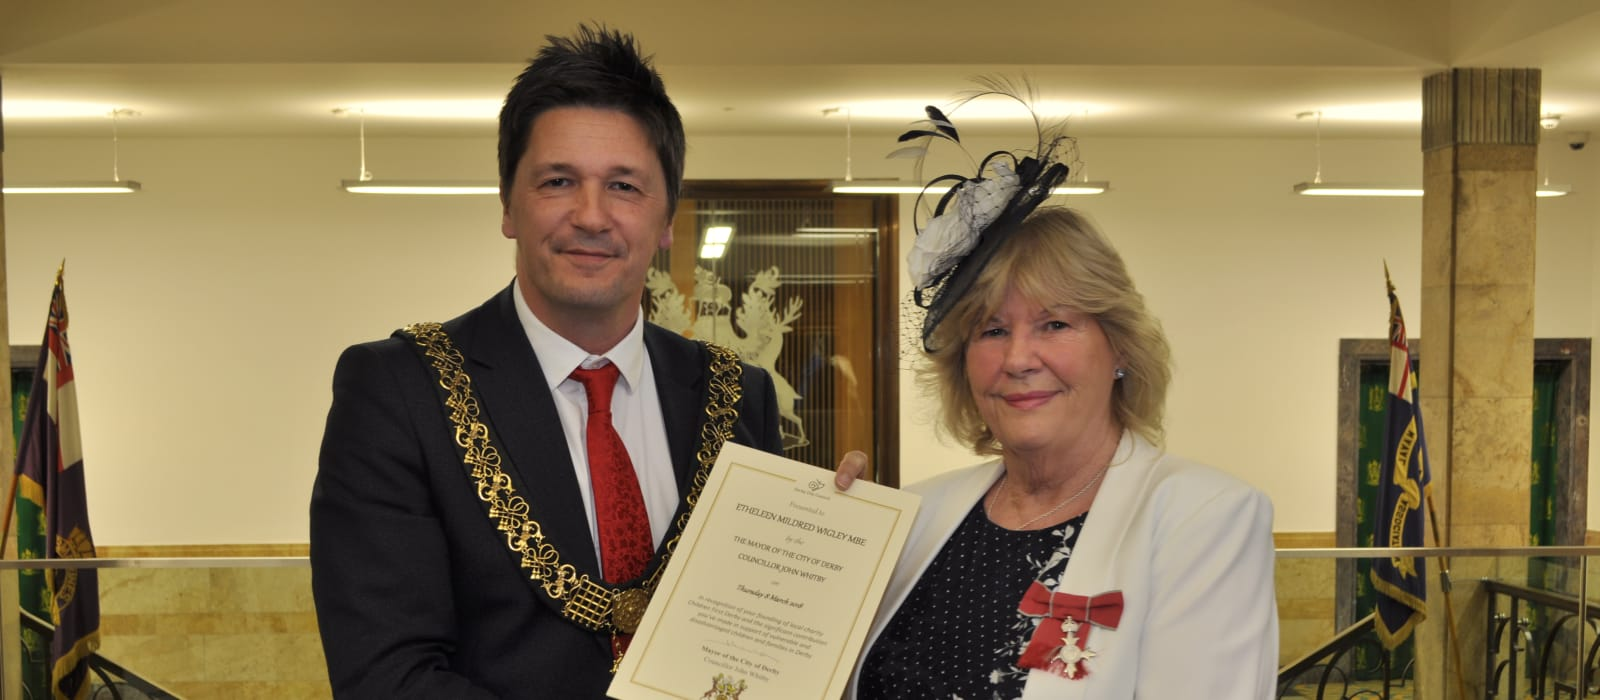 Mayor of Derby, Councillor John Whitby presents certificate to Etheleen Mildred Wigley in recognition of founding the Children First Derby charity